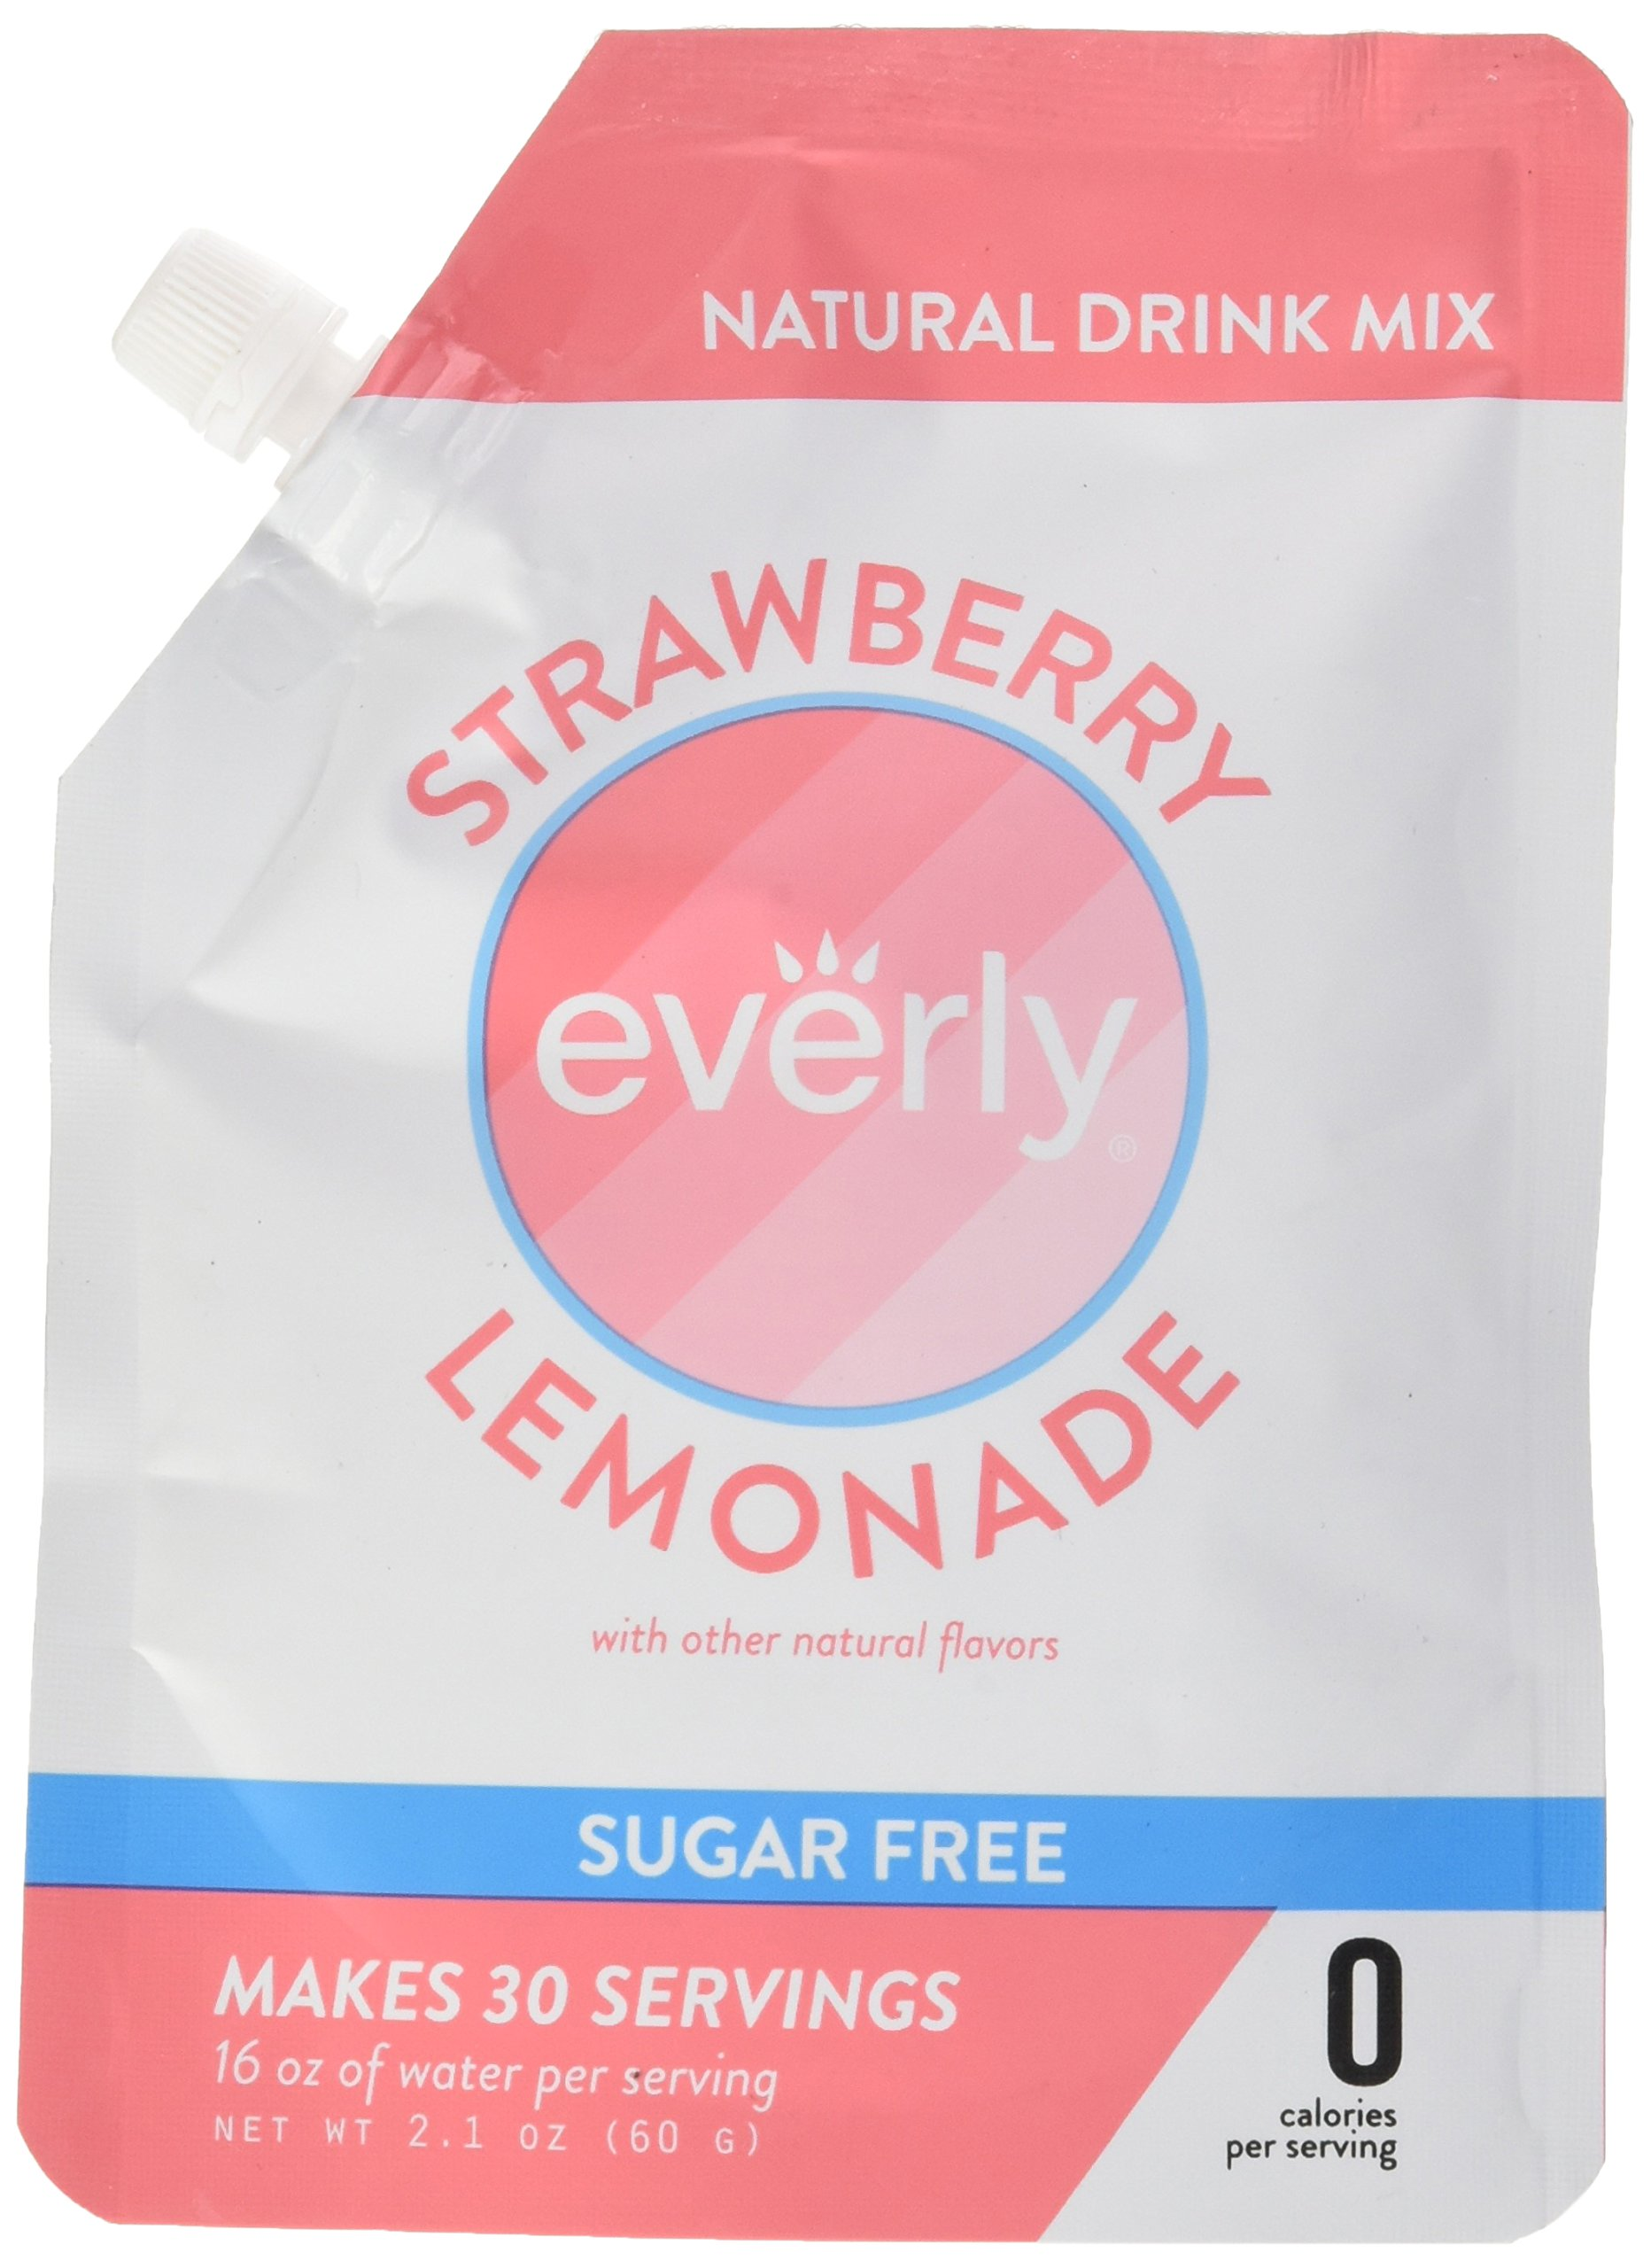 Everly Hydration - Affordable, Sugar Free, Low Calorie, Natural Mix Powder, Water Flavoring and Water Enhancer – Pouch, 30 servings - Strawberry Lemonade